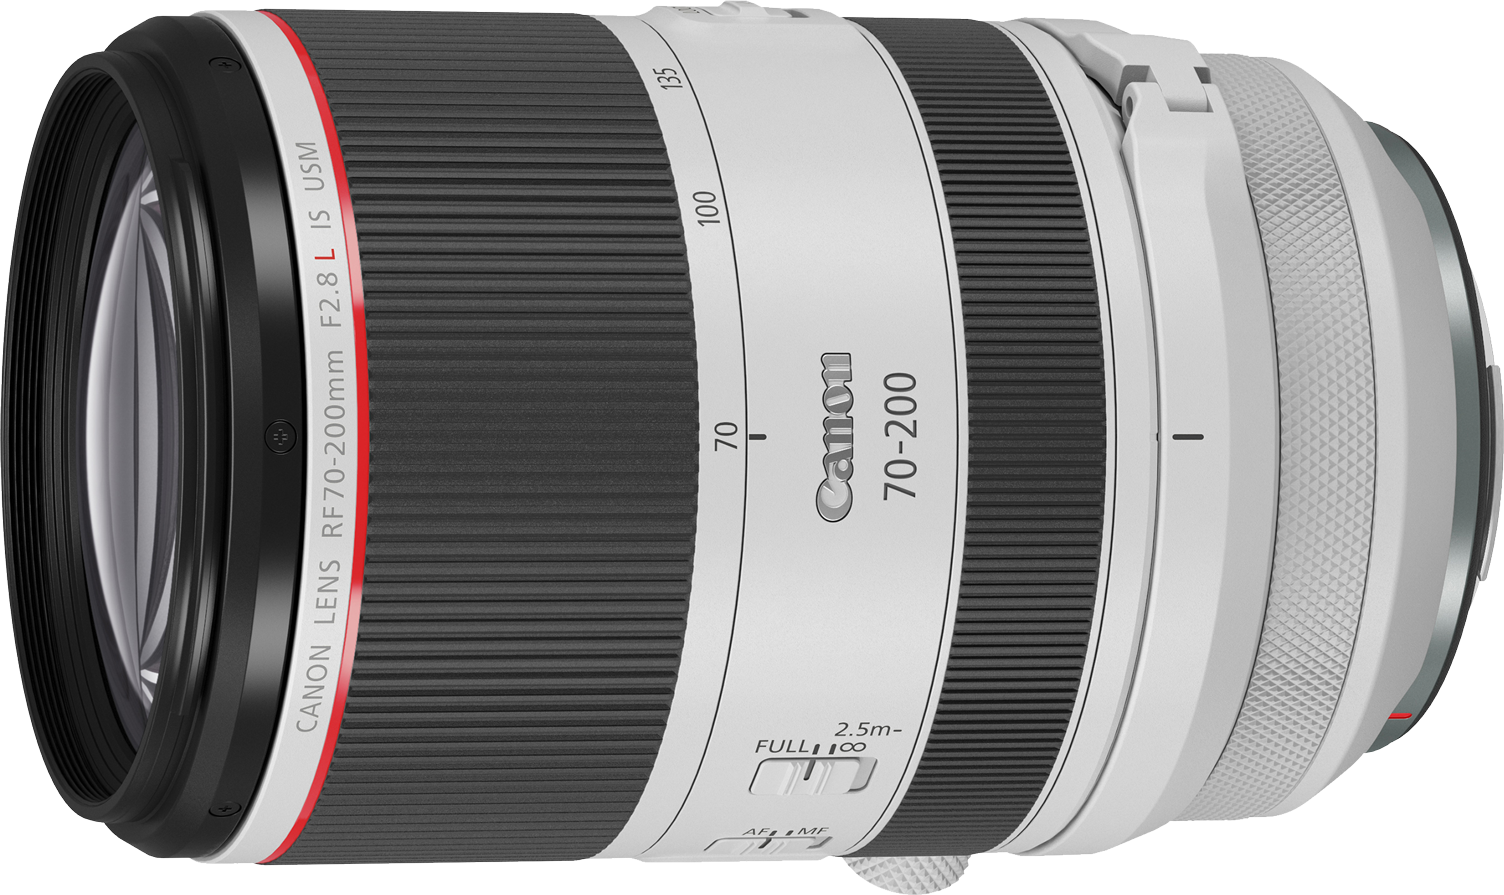 Canon RF 70-200mm F2.8L IS USM: Digital Photography Review